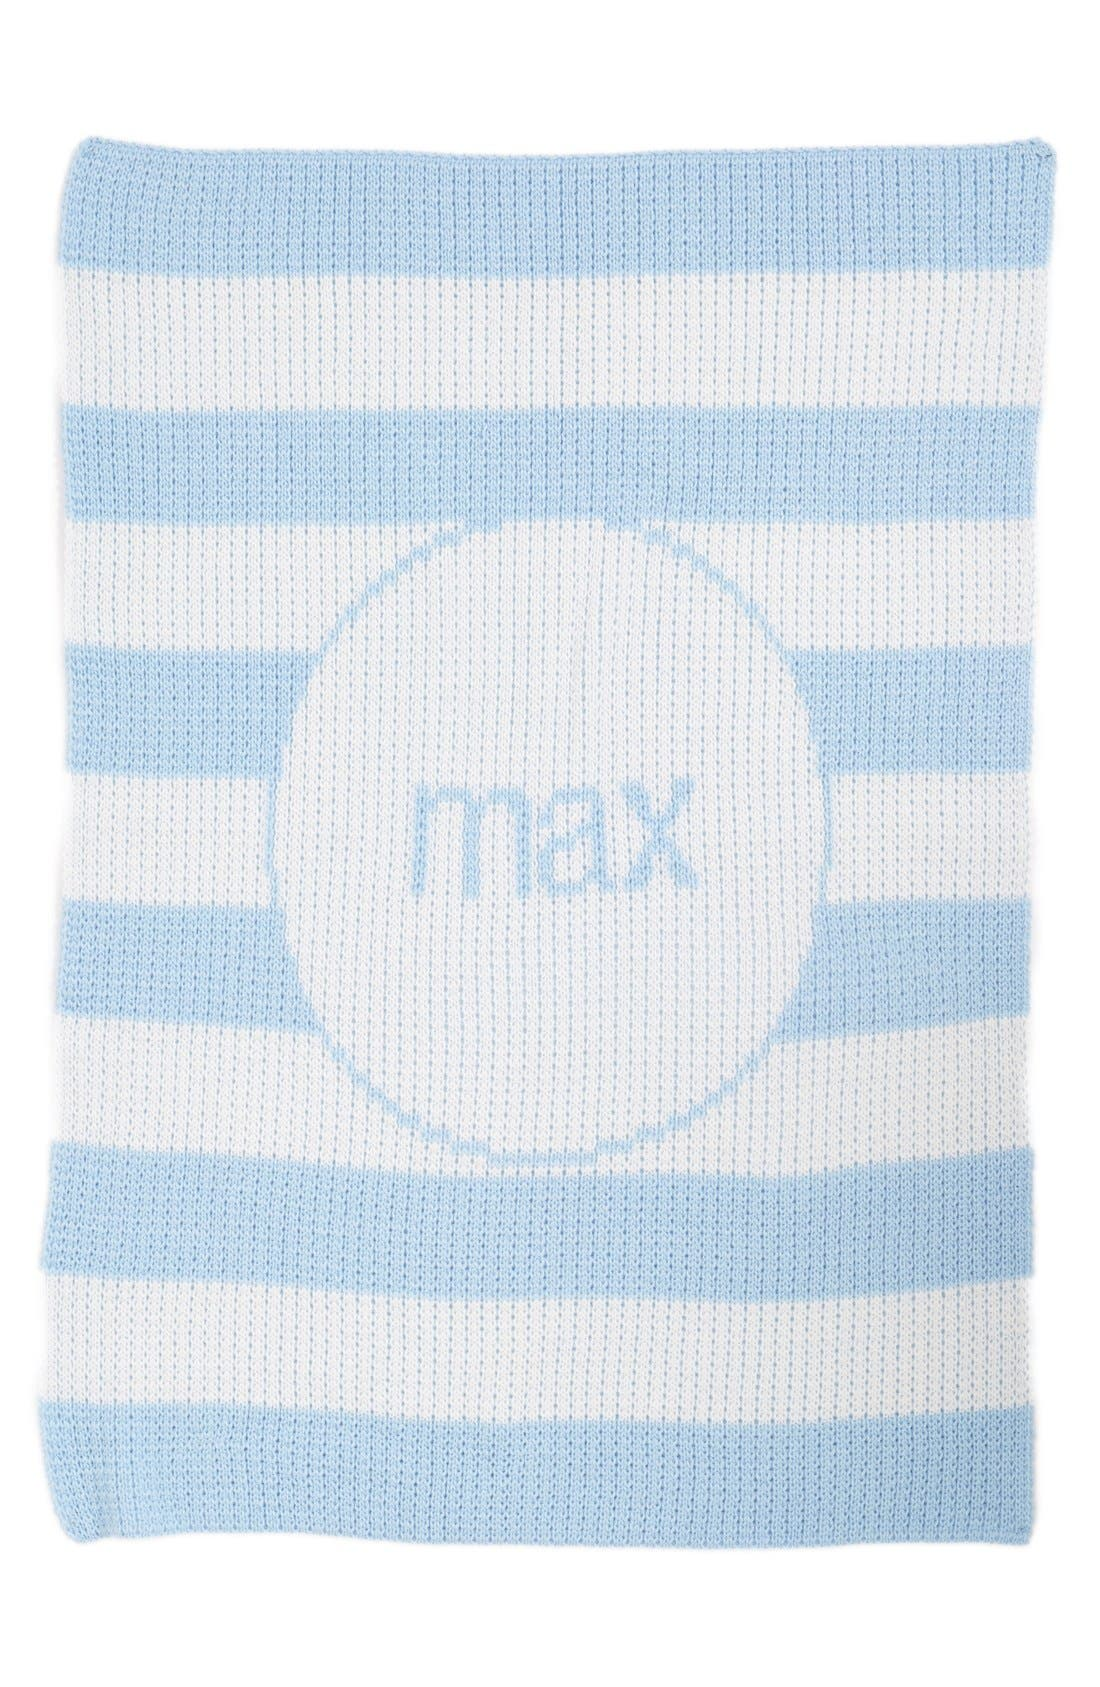 'Modern Stripe' Personalized Crib Blanket,                             Main thumbnail 1, color,                             White/ Pale Blue